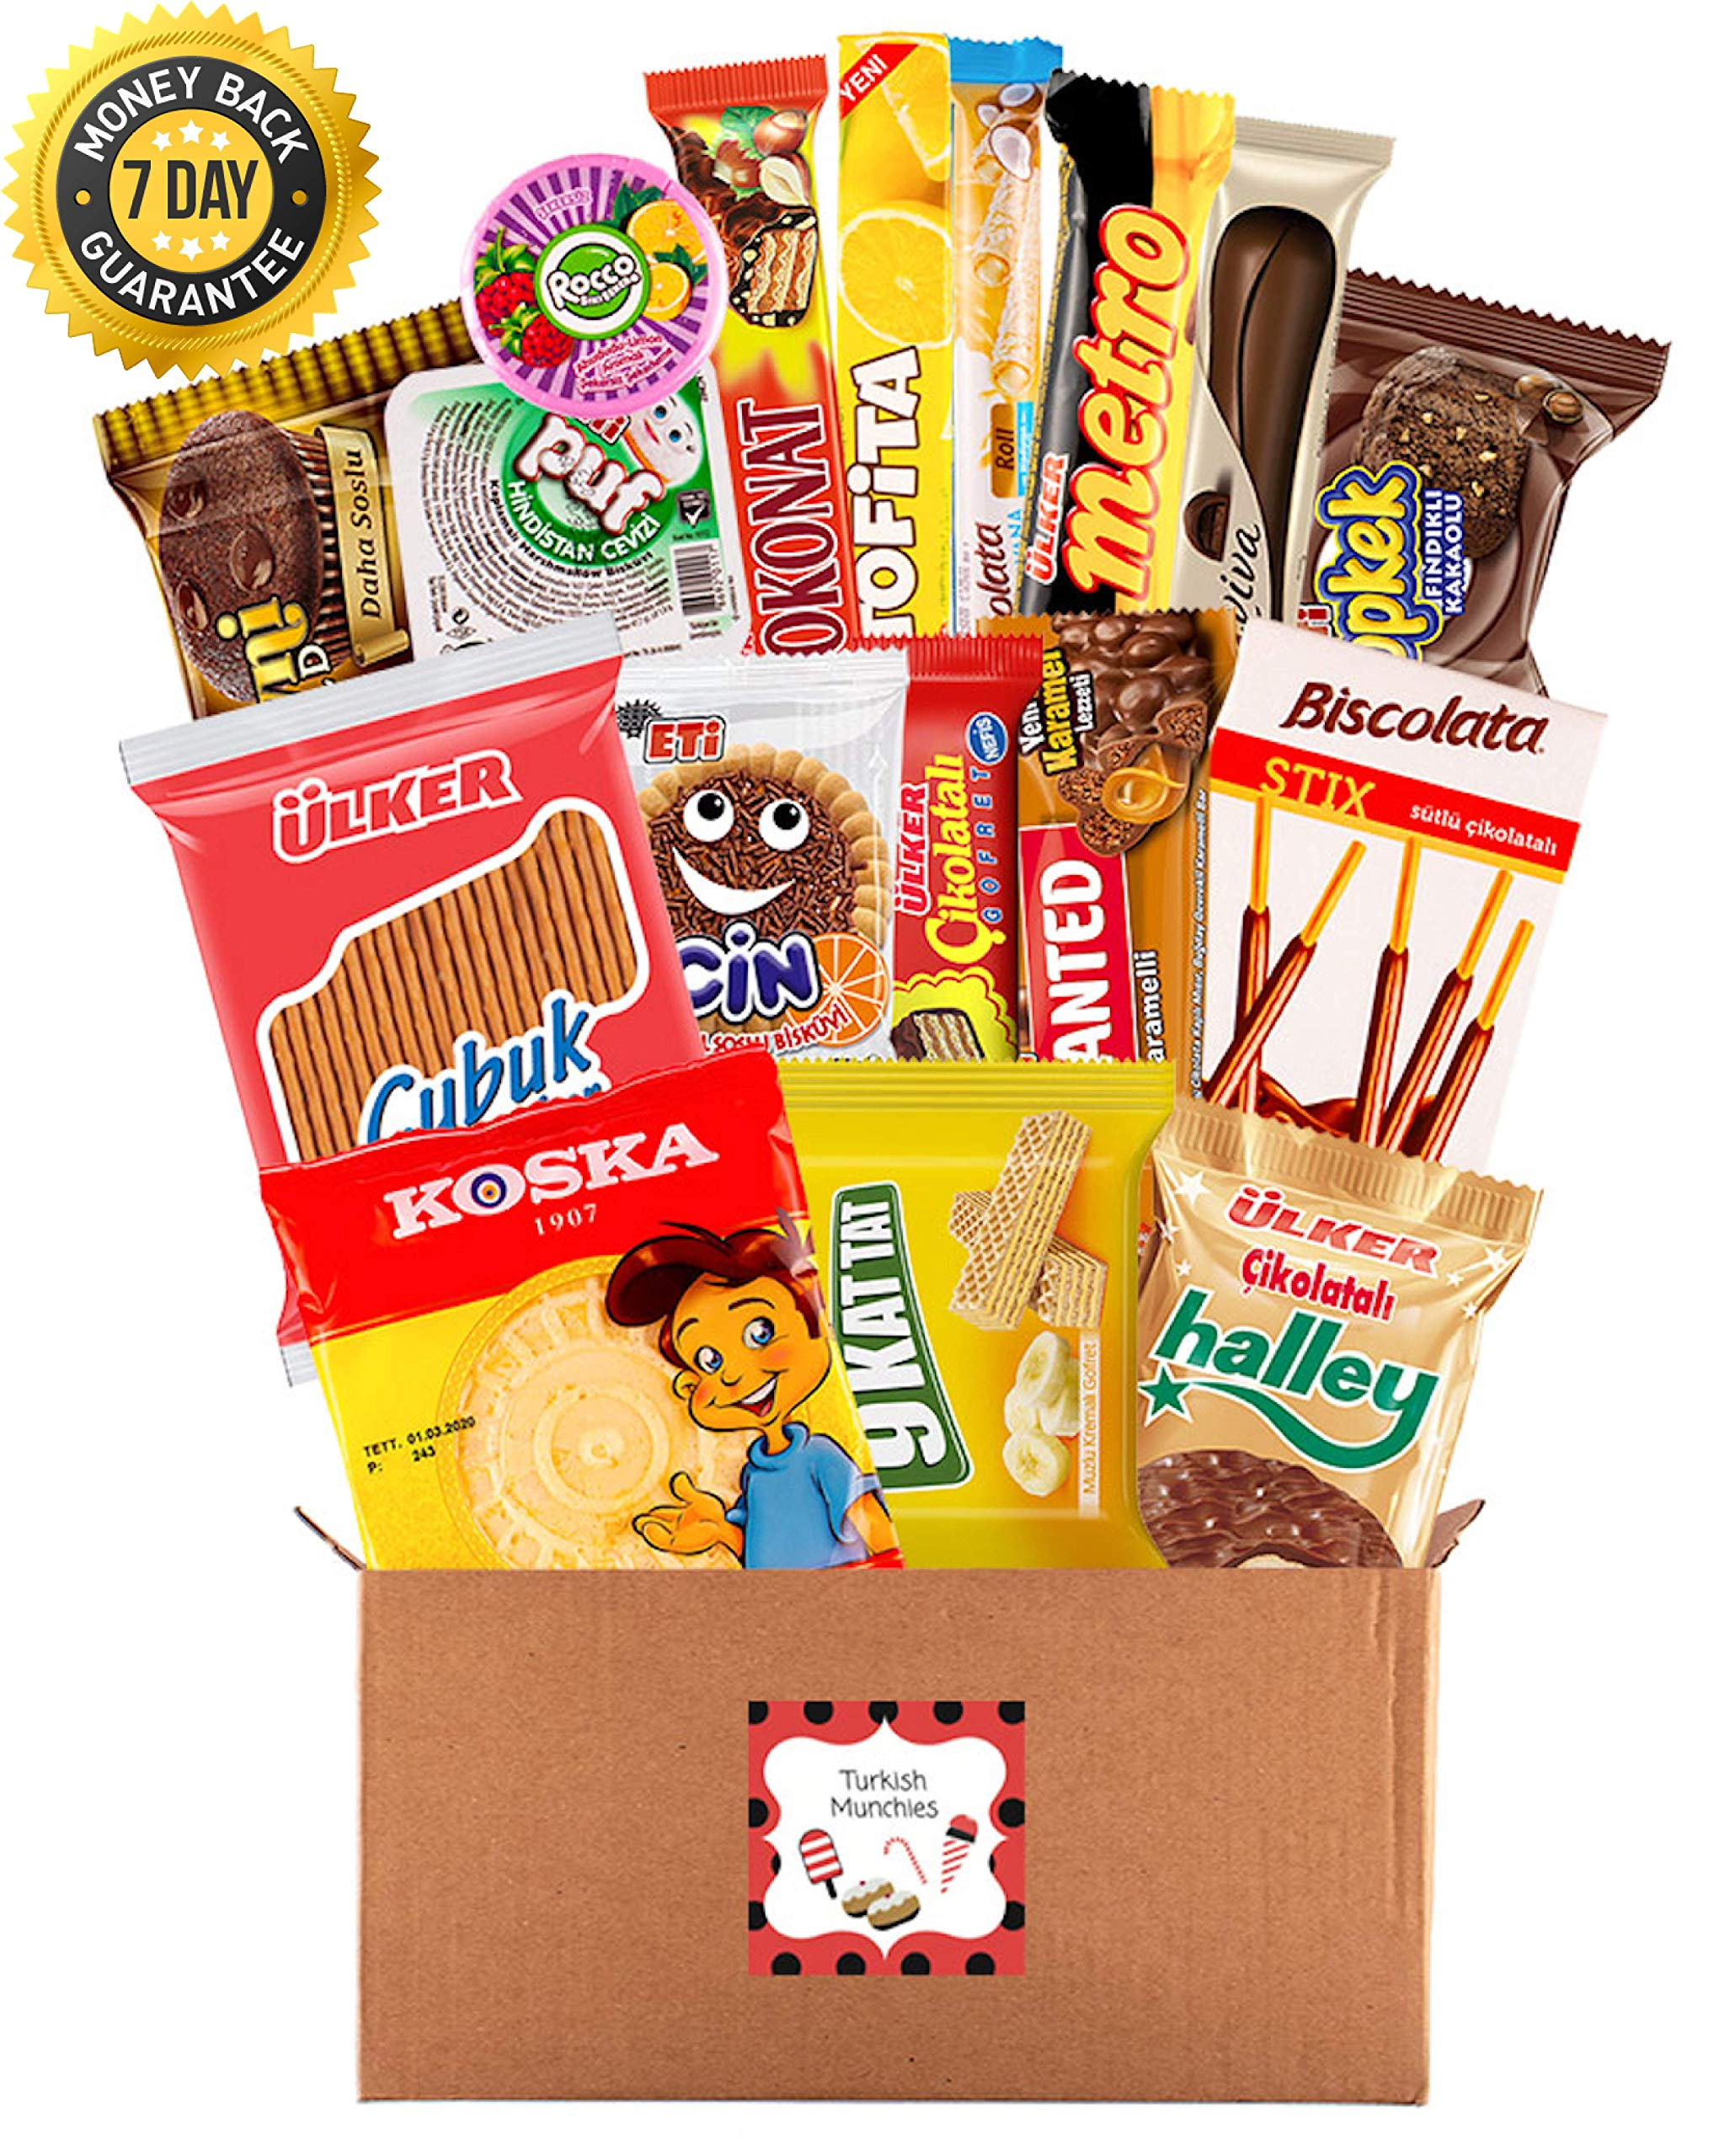 Premium International Snacks Variety Pack Care Package, Ultimate Assortment of Turkish Treats, Mix variety pack of chips, crackers, candy, Best for College Students, Military, Office Home (20 Counts)